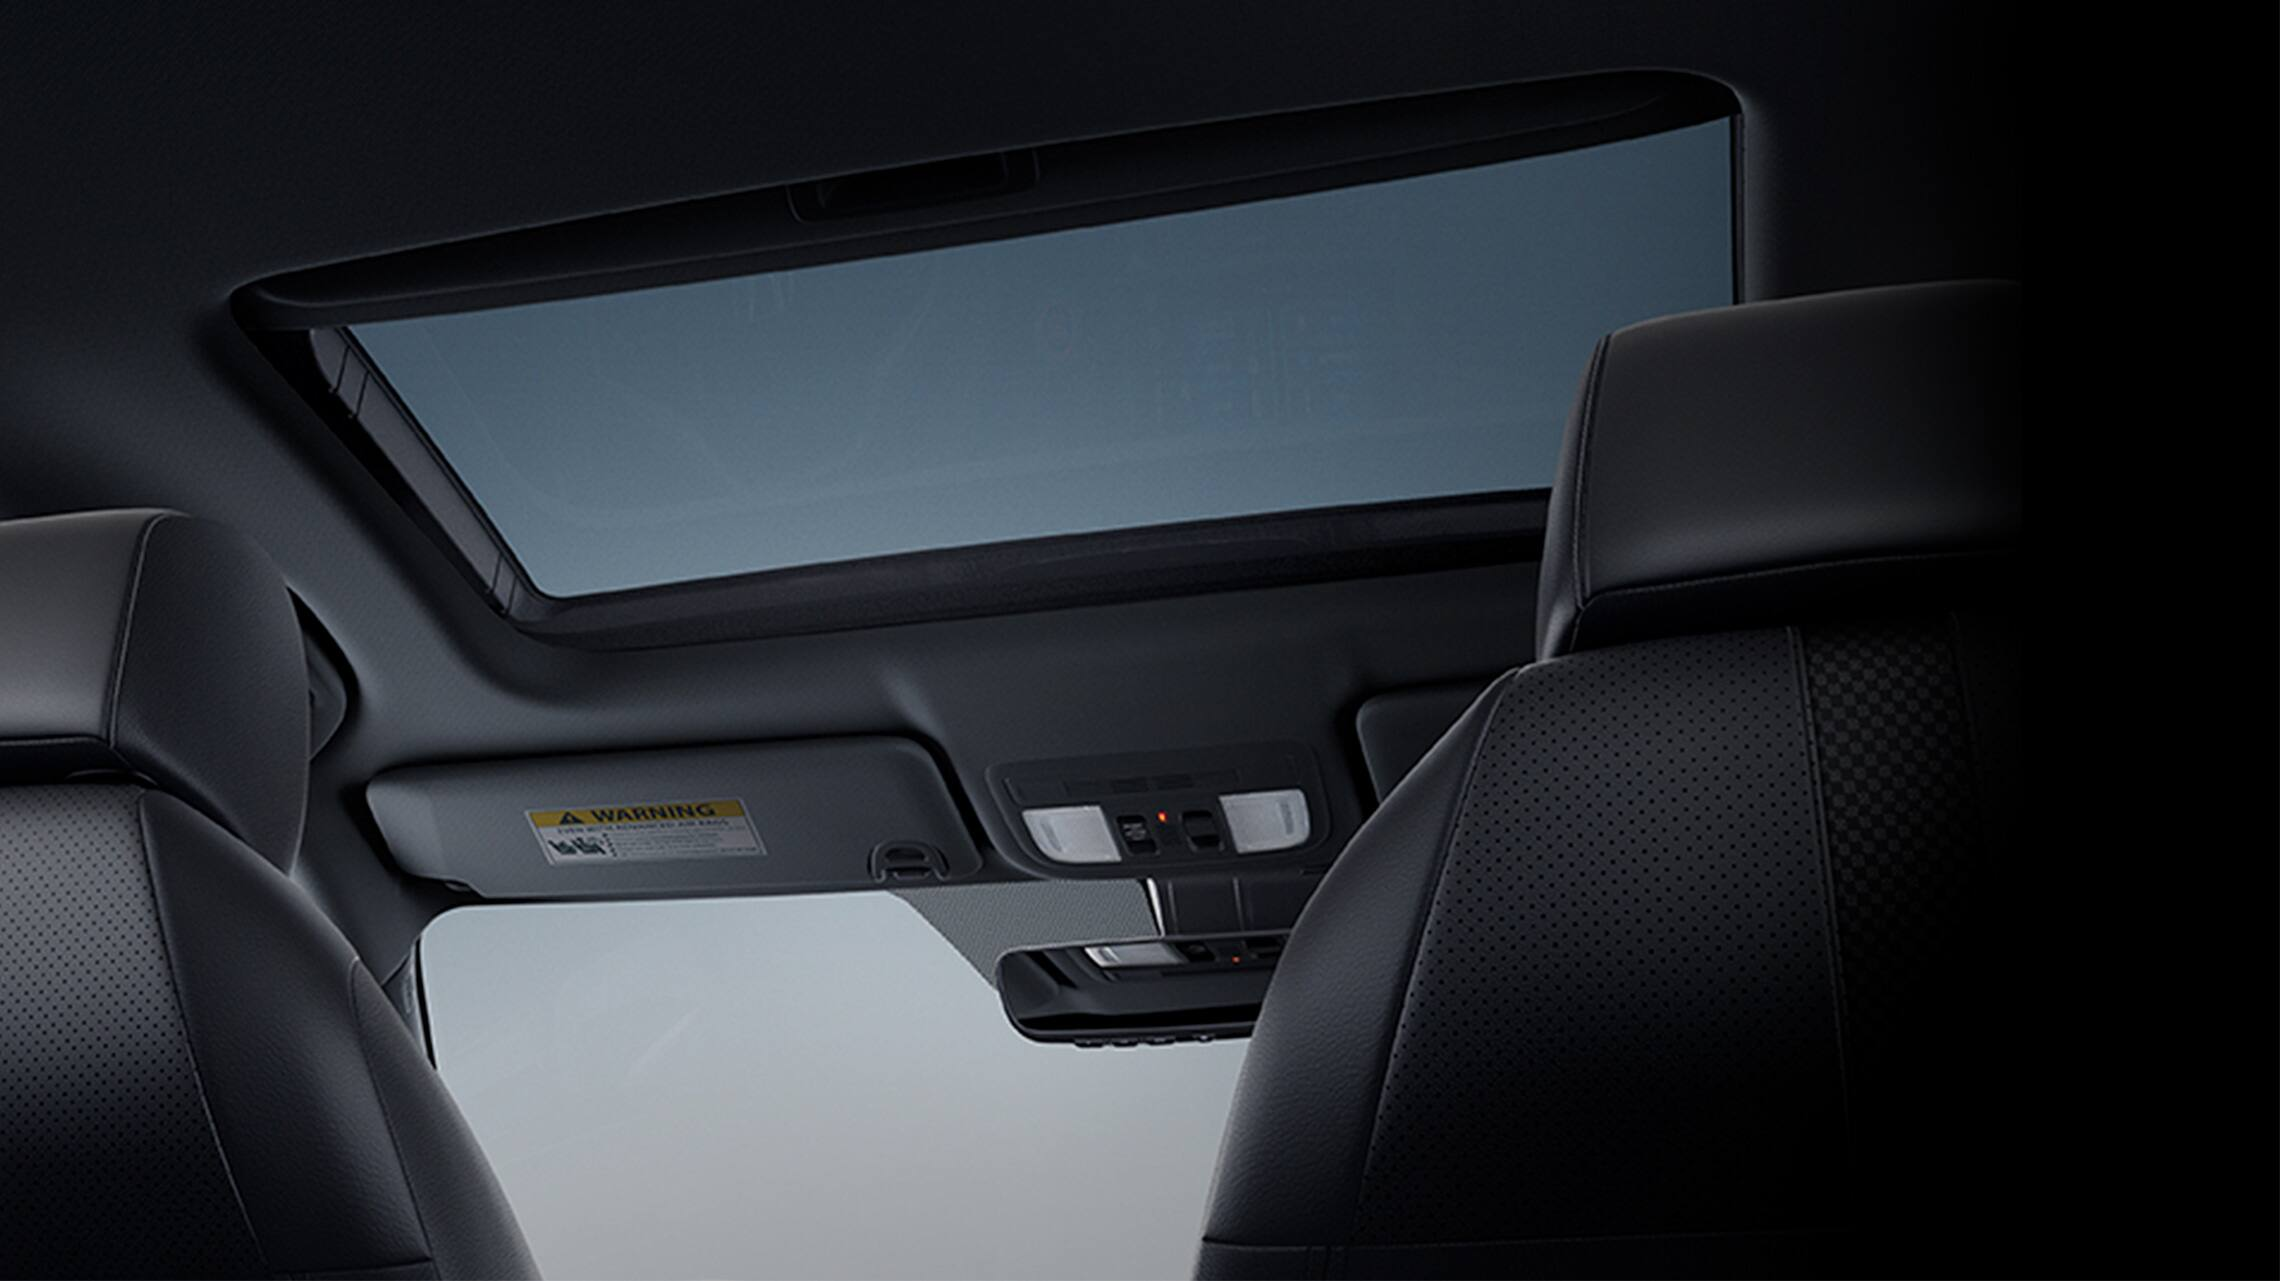 Power moonroof detail in 2020 Honda Civic Sport Touring Hatchback.